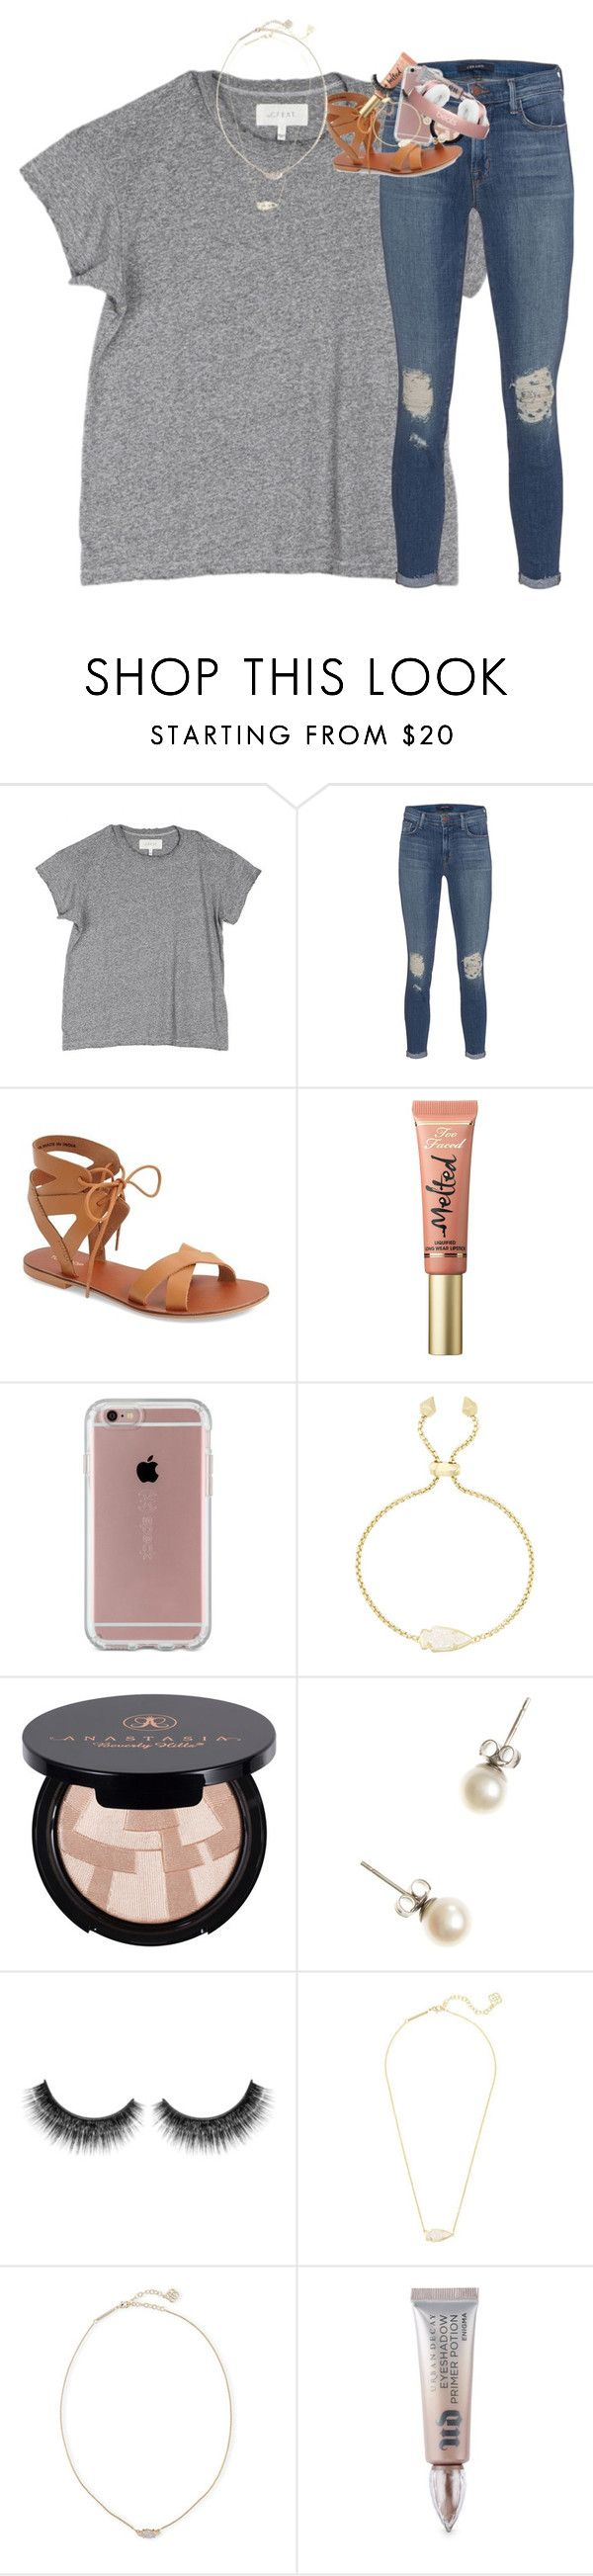 """""""got my nails redone today!!"""" by classynsouthern ❤ liked on Polyvore featuring The Great, J Brand, Topshop, Too Faced Cosmetics, Speck, Kendra Scott, Anastasia Beverly Hills, J.Crew and Urban Decay"""